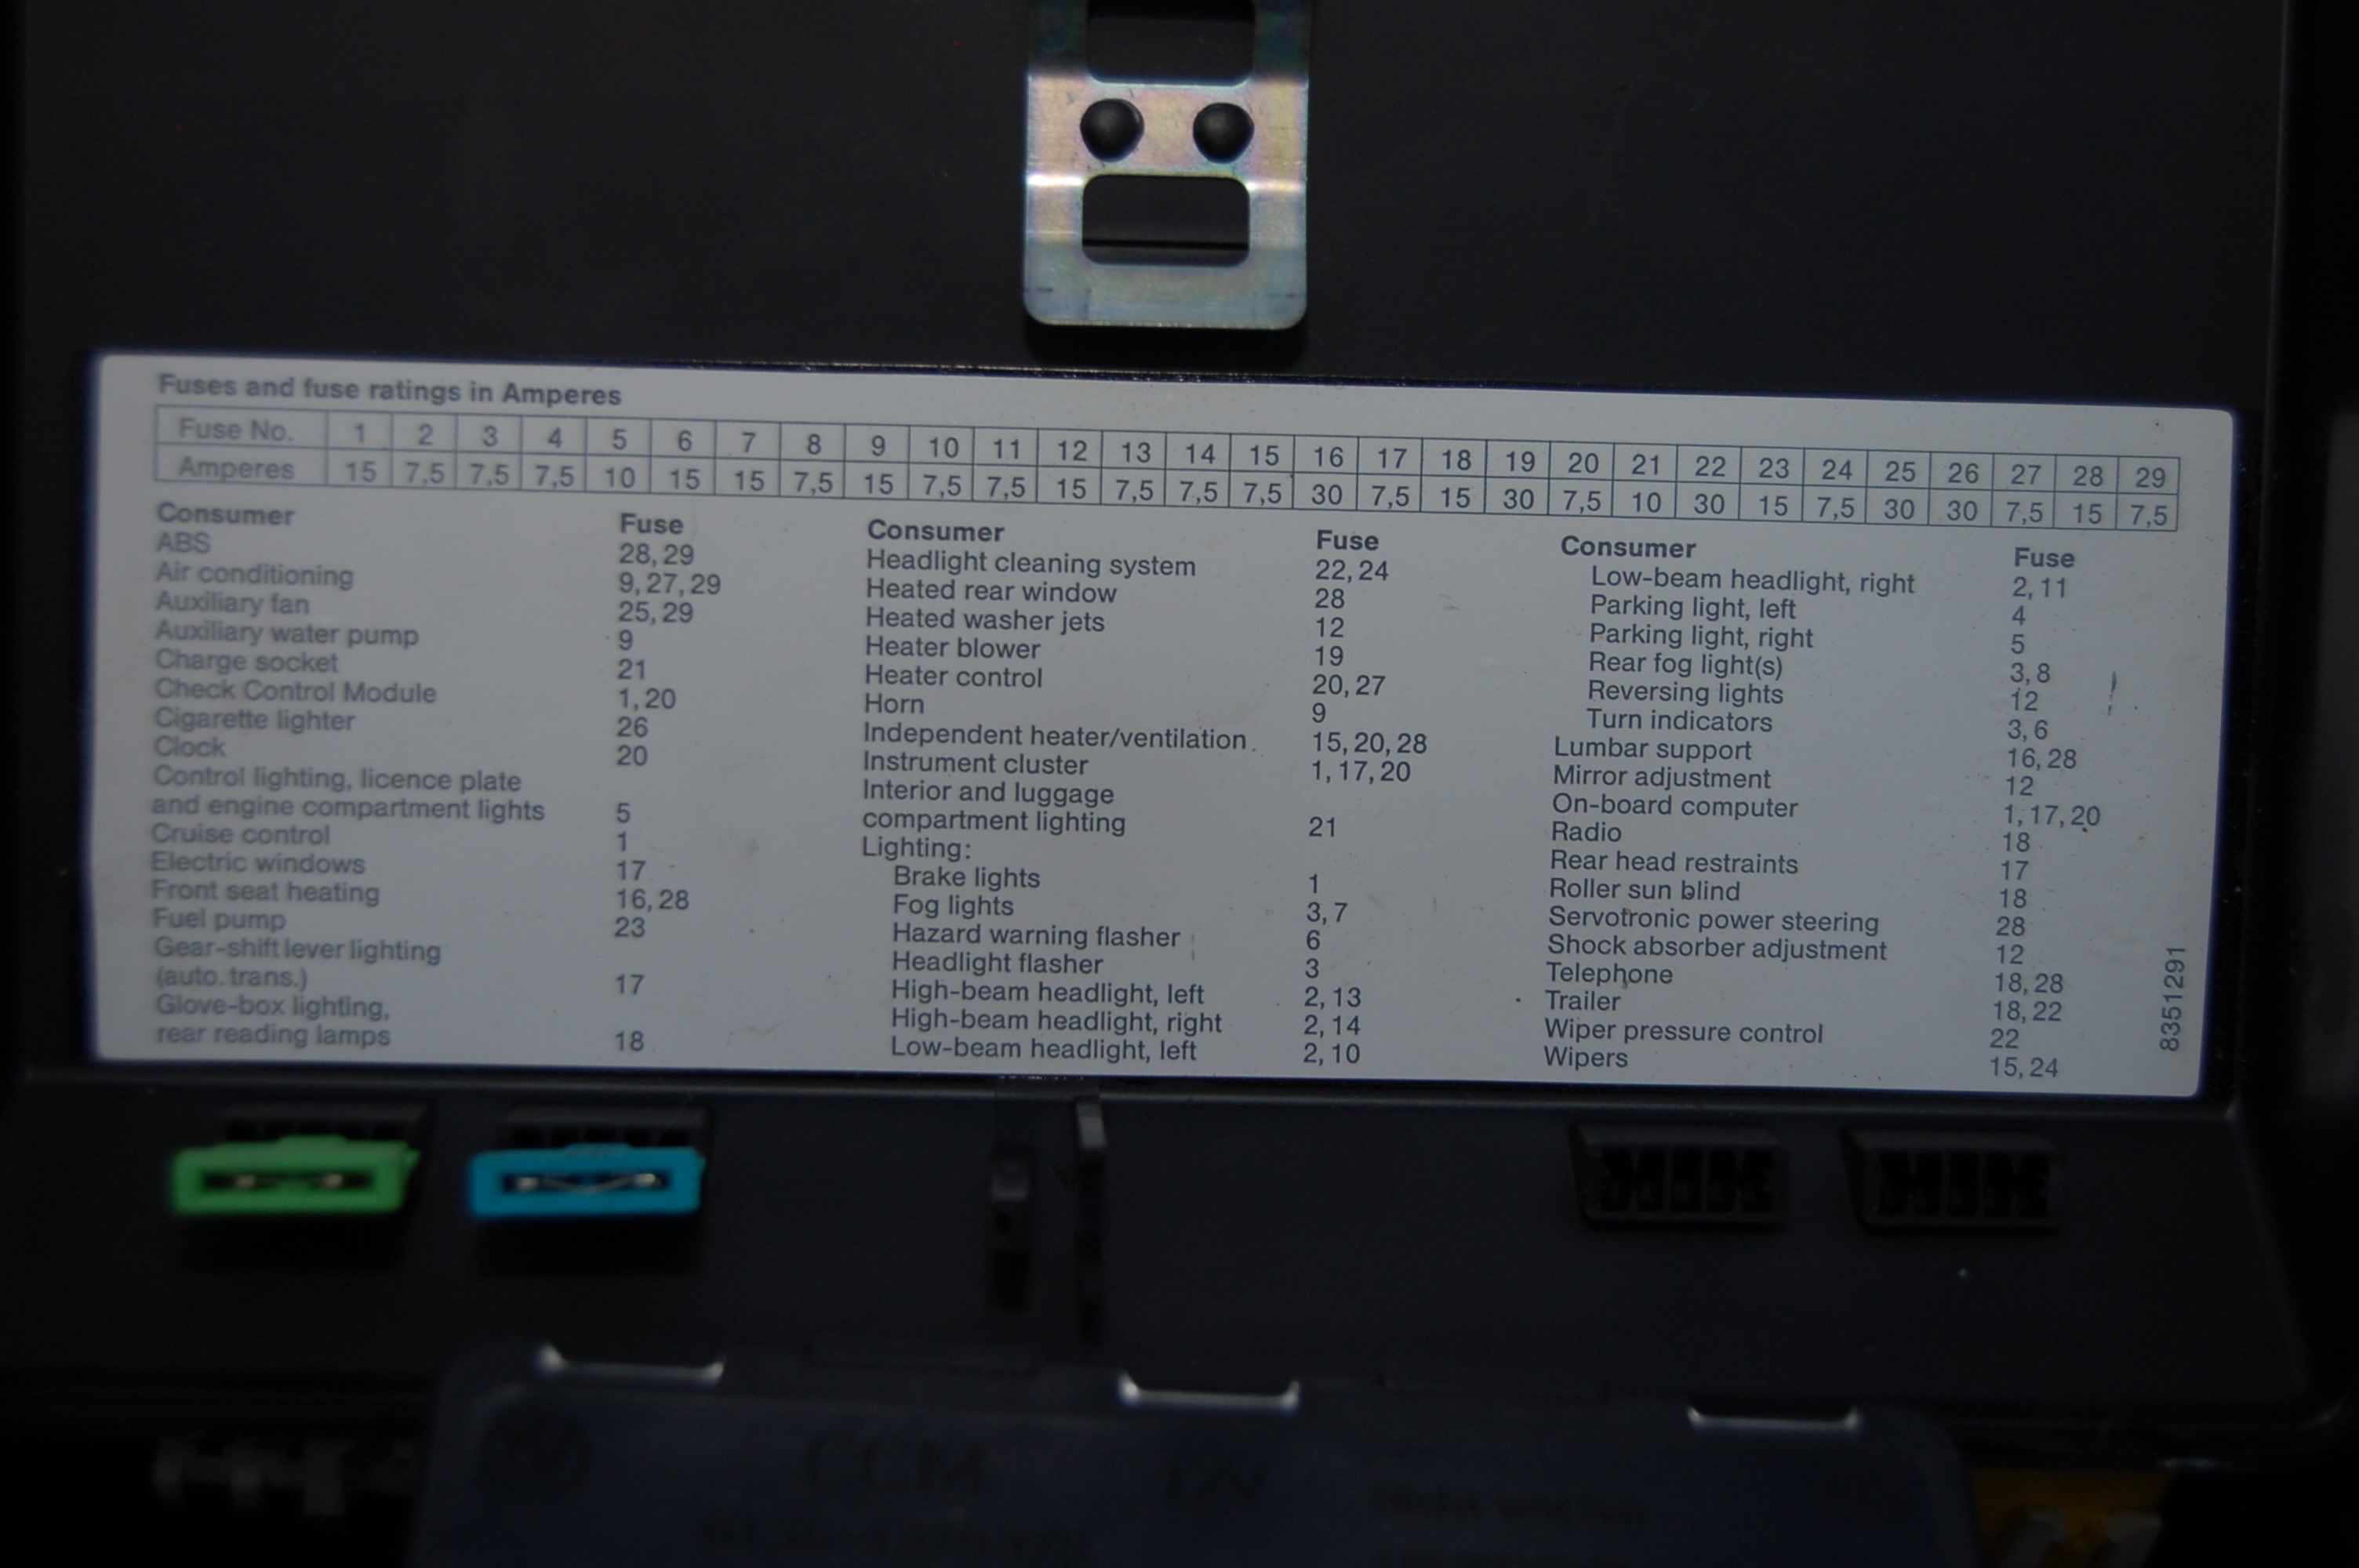 bmw e34 fuse box wiring diagram operations bmw e34 fuse box [ 3008 x 2000 Pixel ]